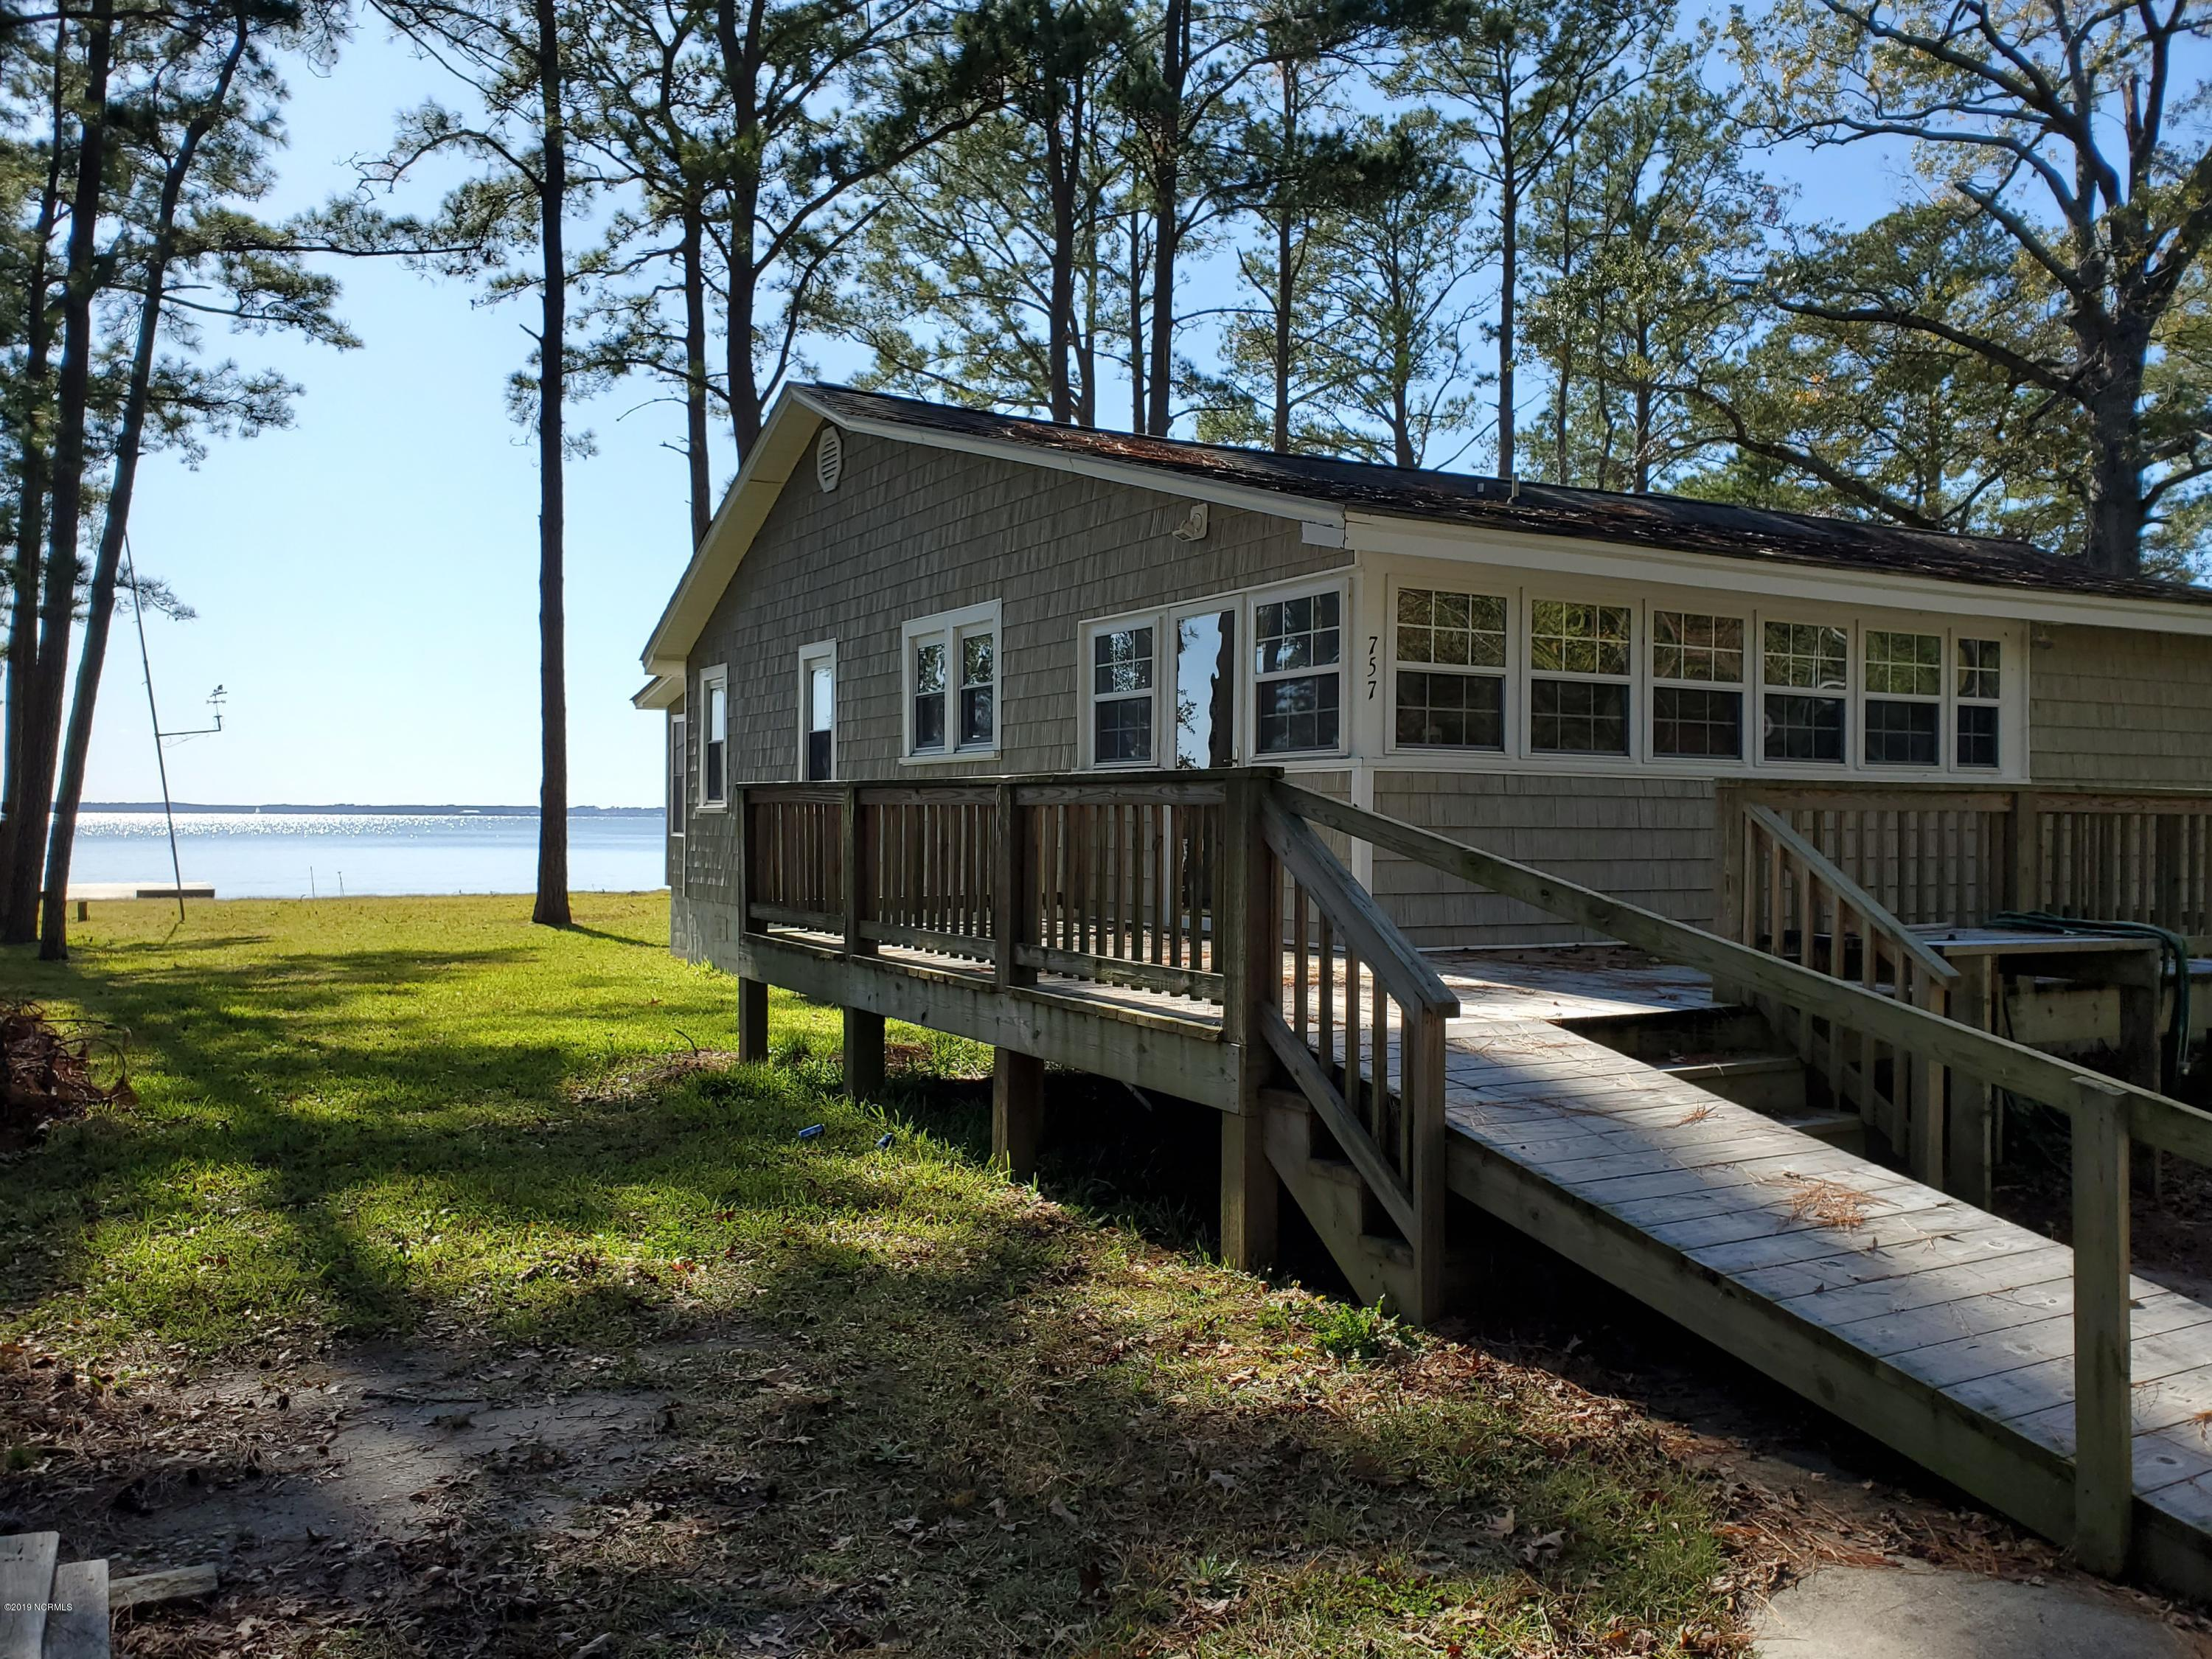 757 Island View Road, Bath, North Carolina 27808, 4 Bedrooms Bedrooms, 6 Rooms Rooms,1 BathroomBathrooms,Single family residence,For sale,Island View,100192491